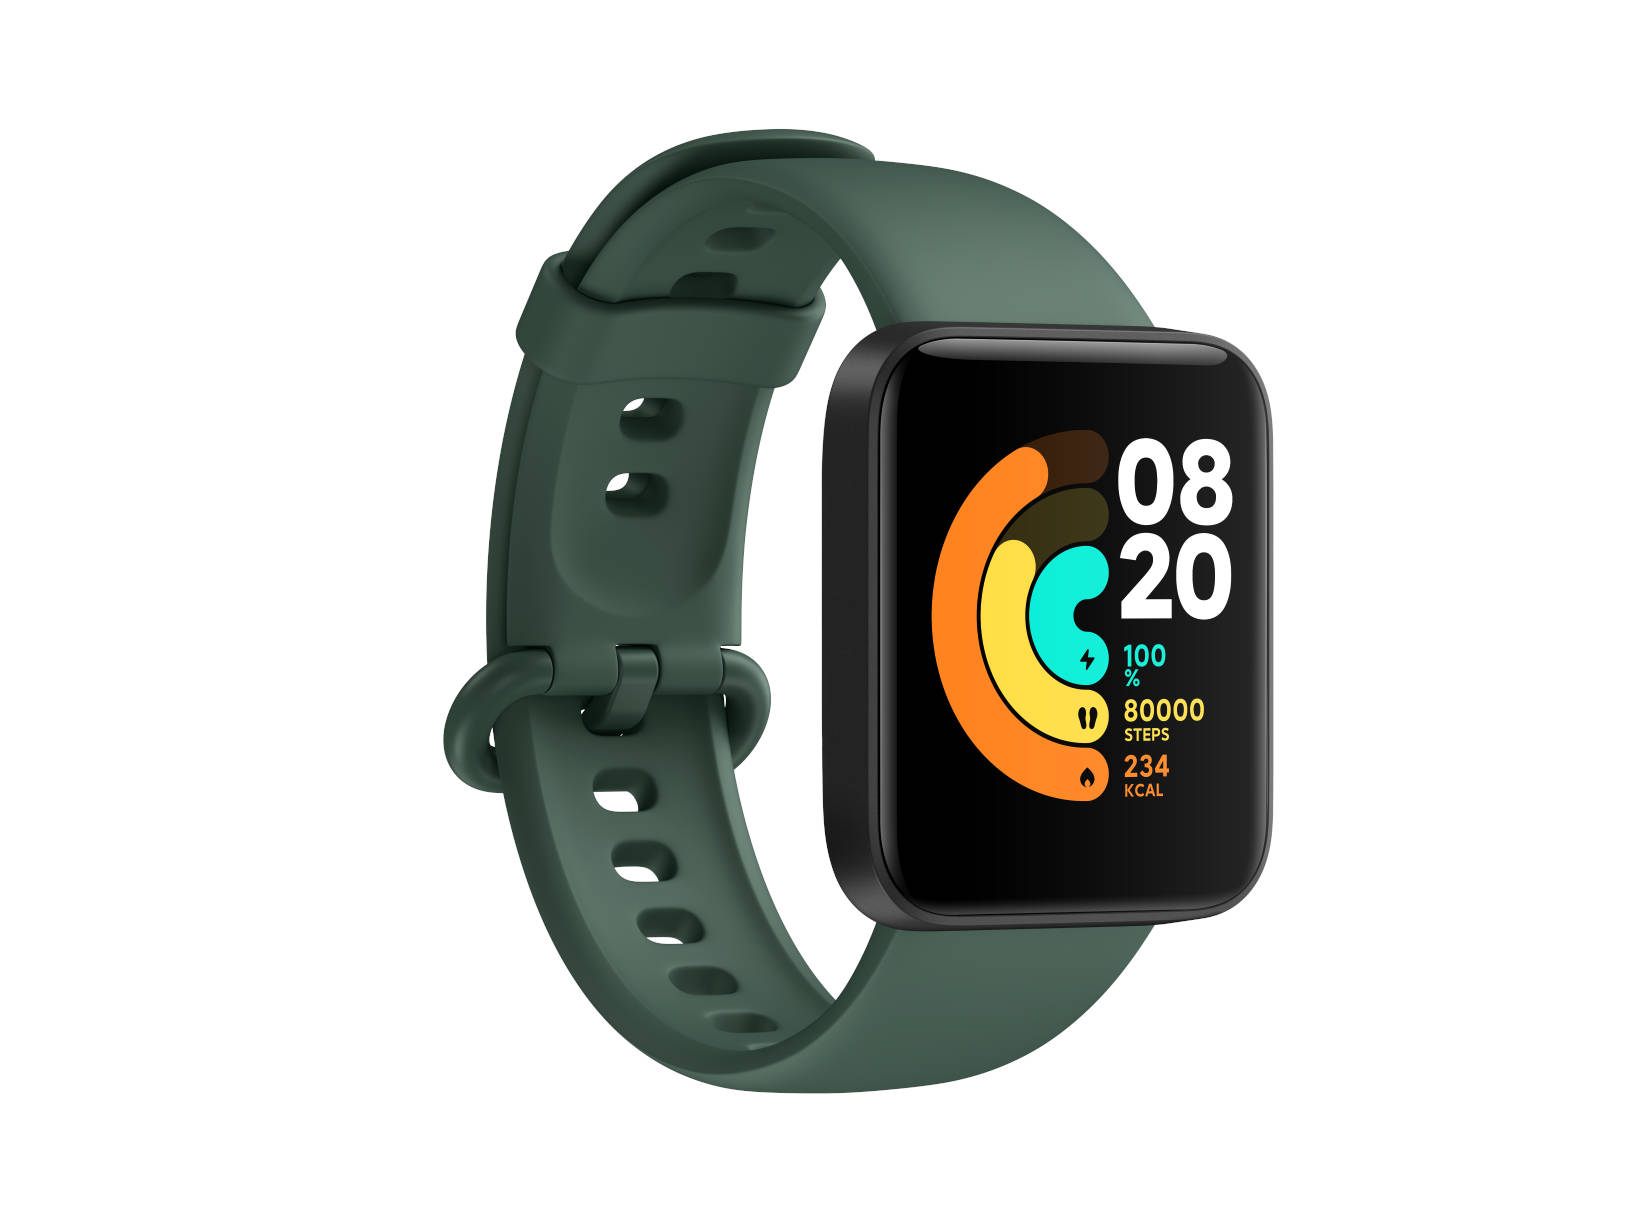 Xiaomi Mi Watch Lite review: What can the affordable smartwatch do and what differentiates it from the more expensive Redmi Watch